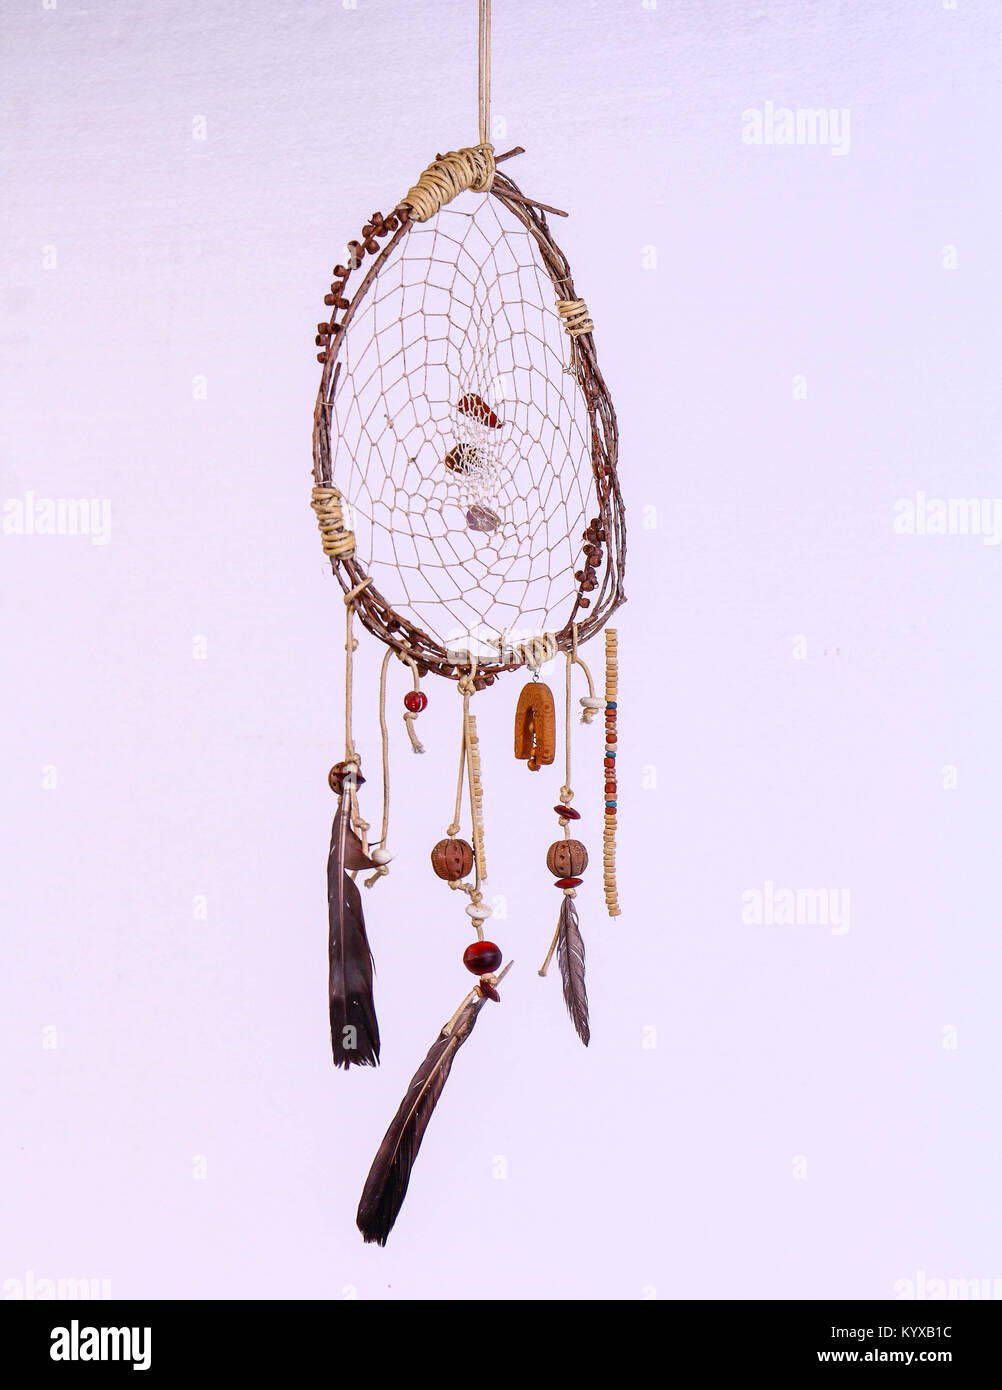 A dream catcher floats in the air, image in portrait format with copy space - Stock Image